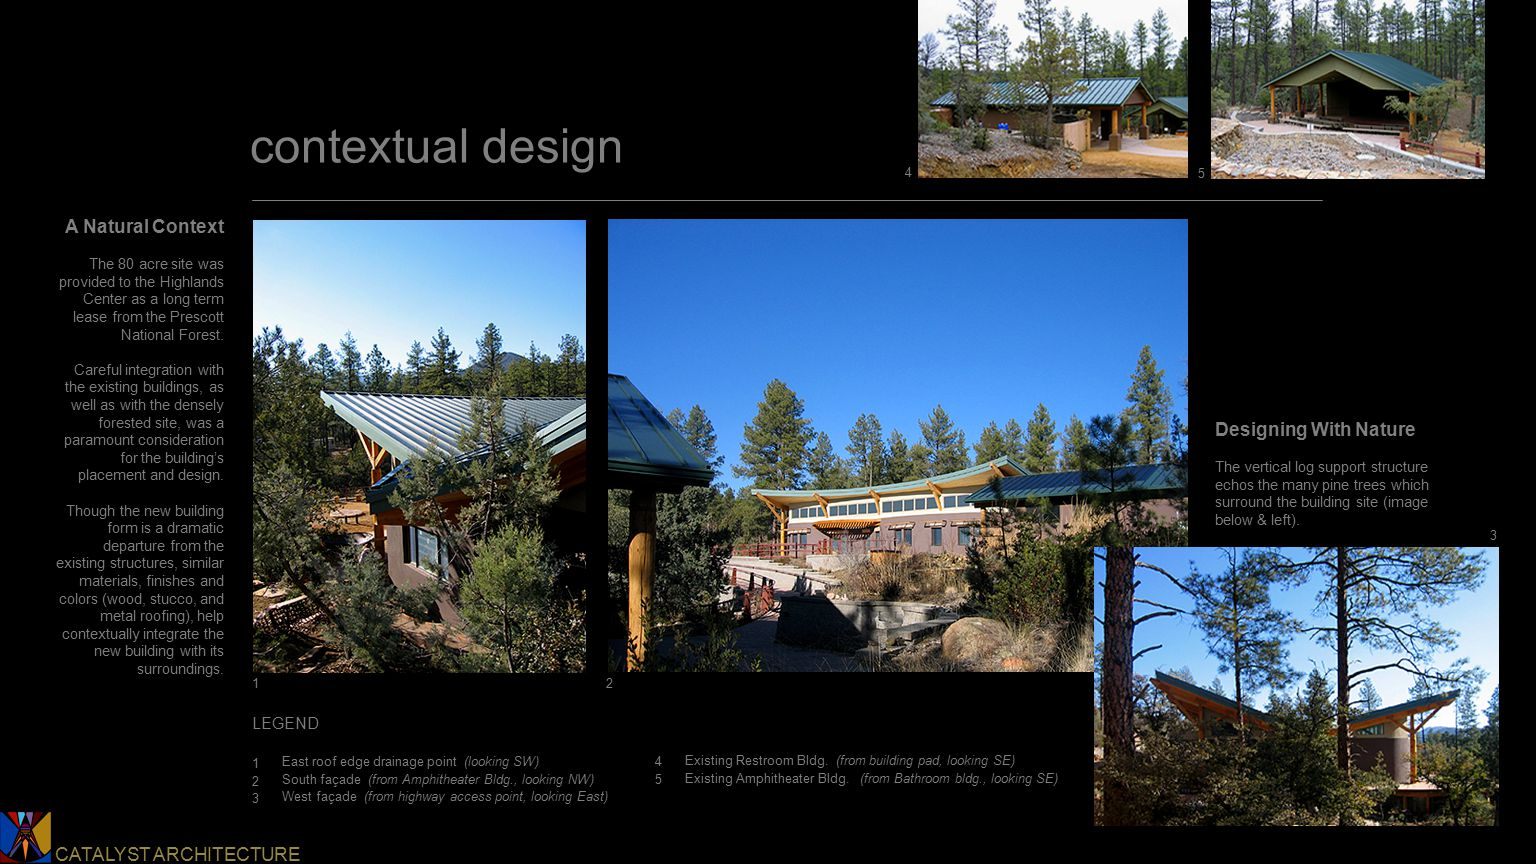 Catalyst Architecture CATALYST ARCHITECTURE contextual design A Natural Context The 80 acre site was provided to the Highlands Center as a long term lease from the Prescott National Forest.